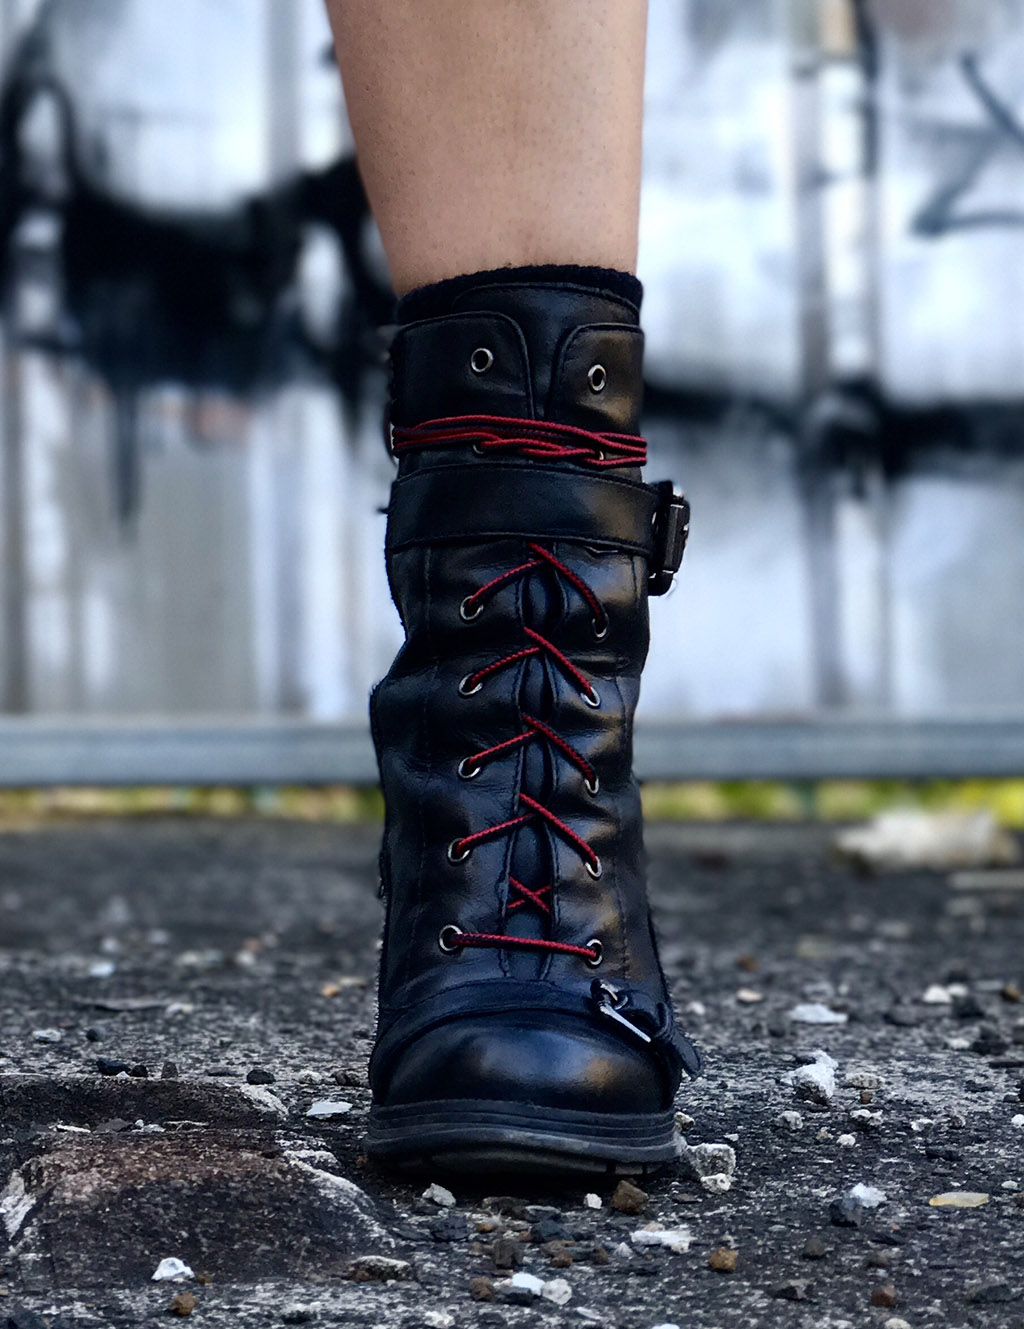 Guess Boots with Hiking Laces